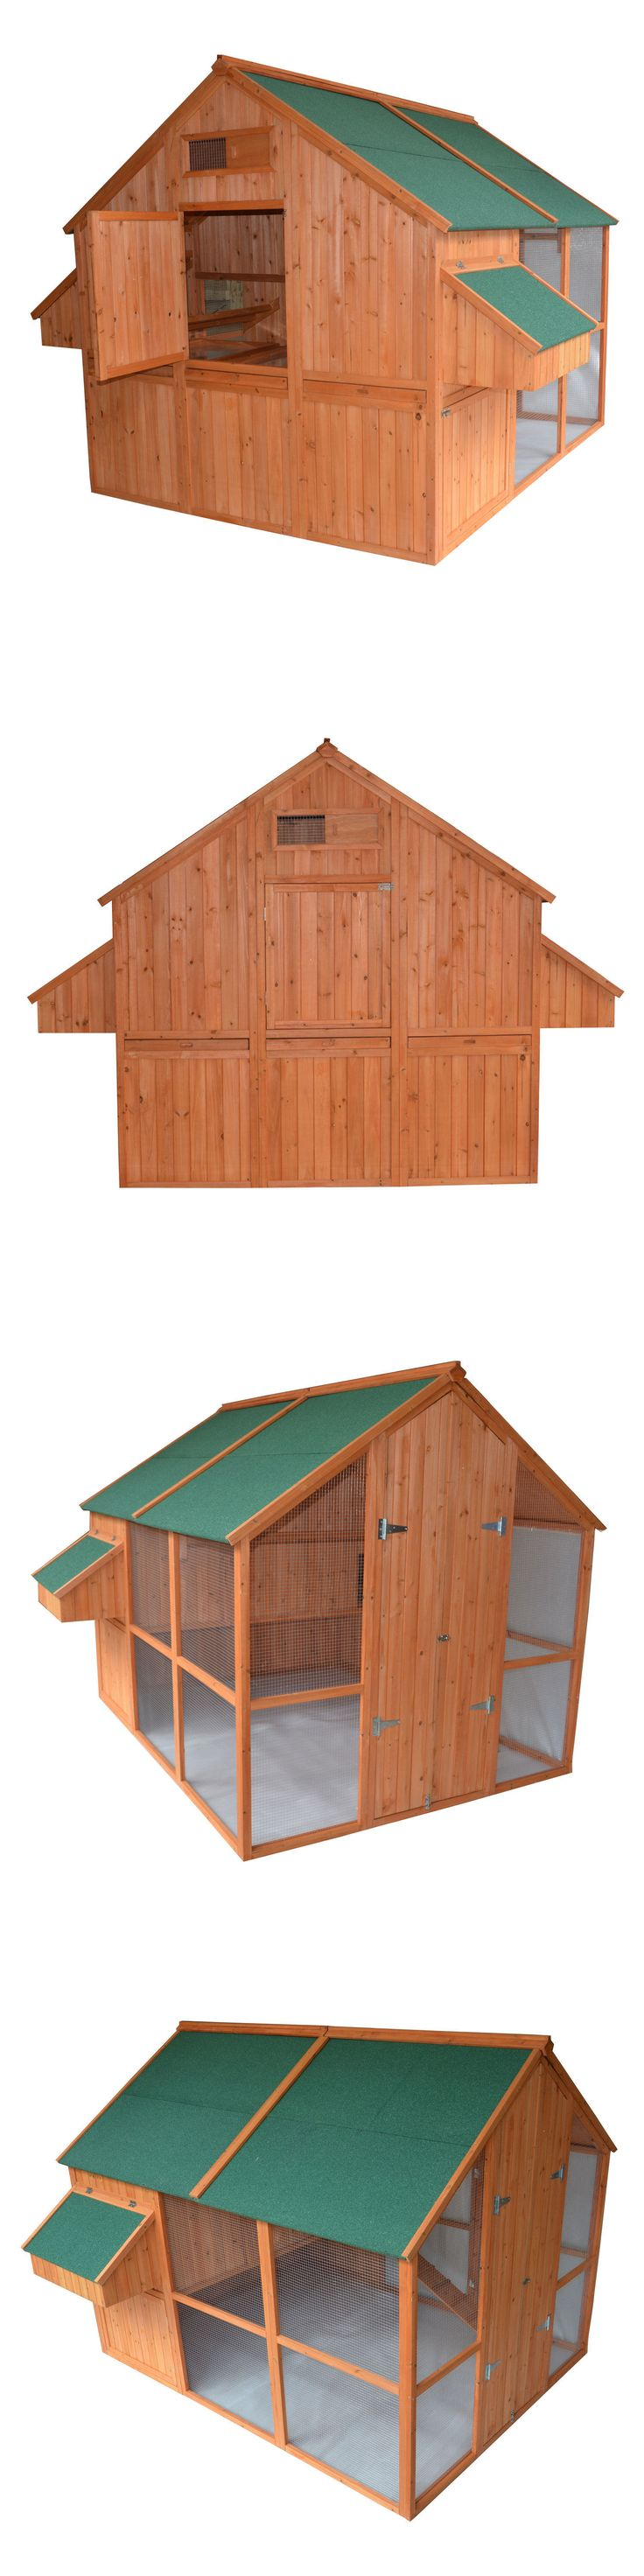 Backyard Poultry Supplies 177801: Large 98 Walk-In Wood Chicken Coop Hen Bird House Rabbit Hutch W 2 Nesting Box BUY IT NOW ONLY: $989.99